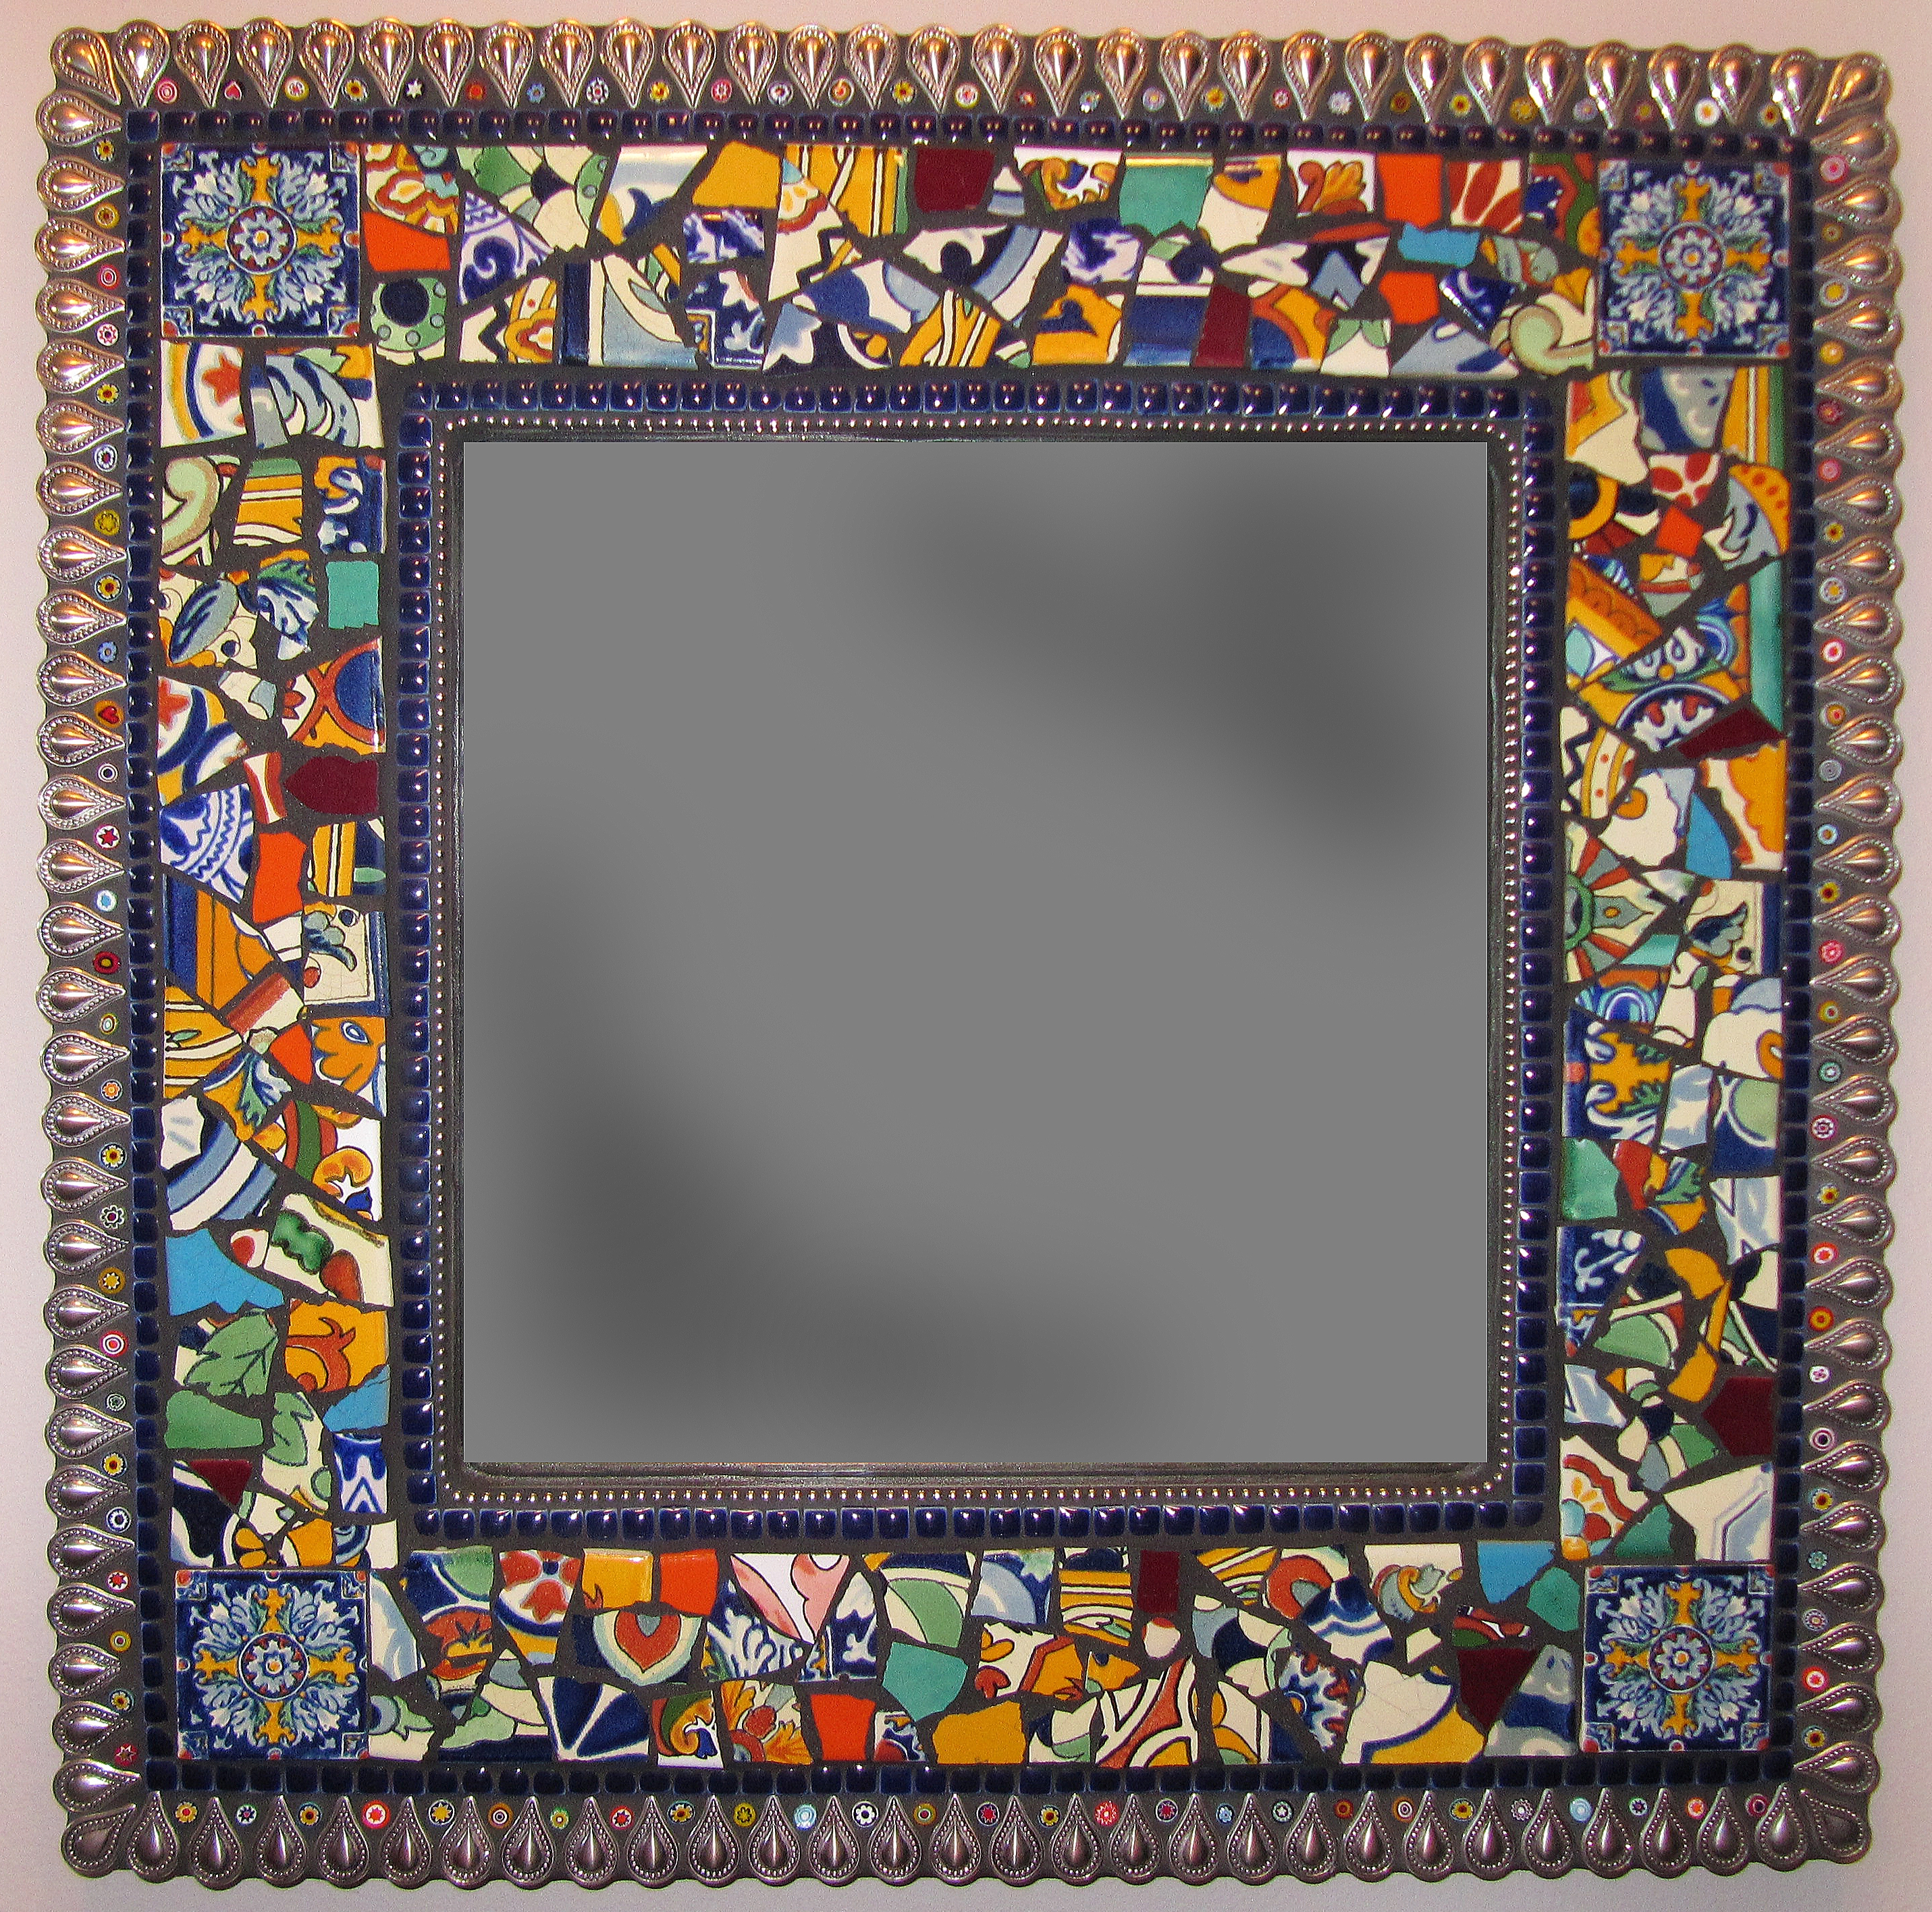 Glenmark Glass Mosaic News Rainforest Series Mosaic Mirrors Throughout Mosaic Mirrors For Sale (Image 4 of 15)